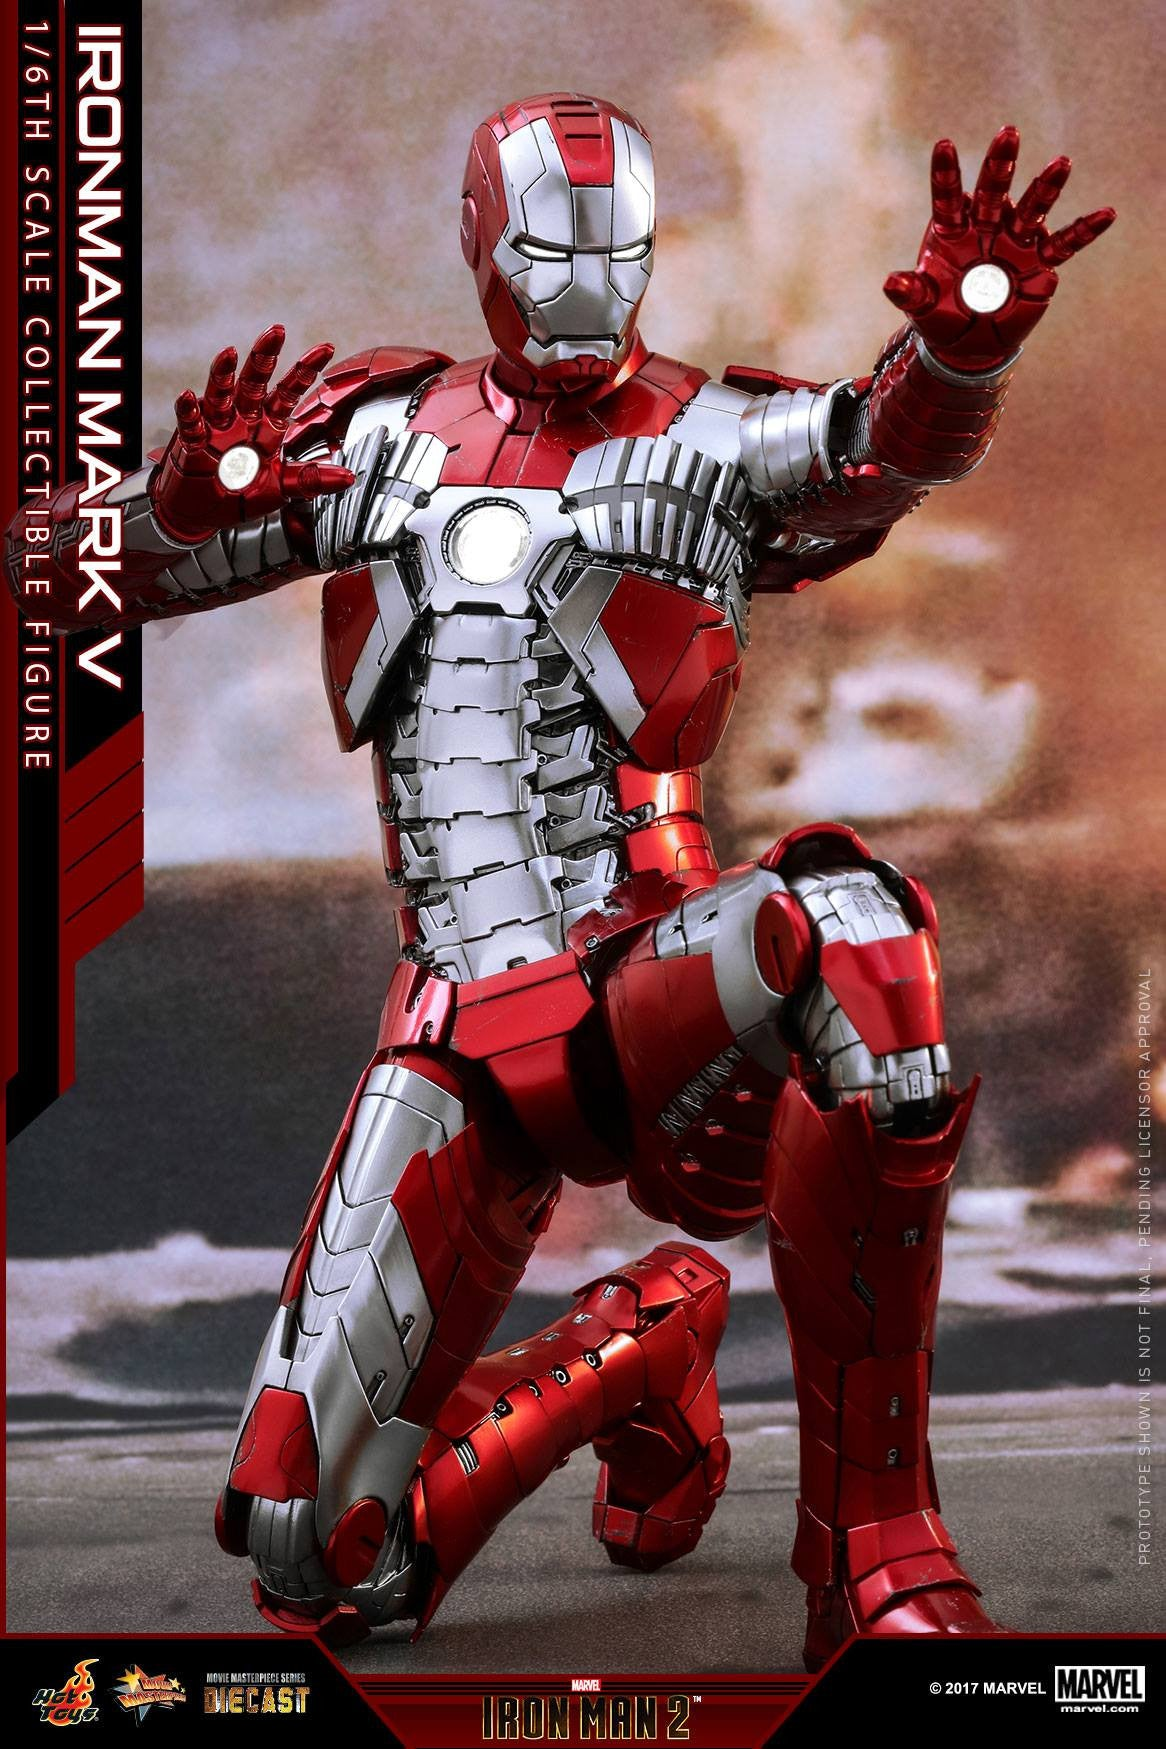 Hot Toys - MMS400D18 - Iron Man 2 - Mark V (DIECAST) - Marvelous Toys - 1